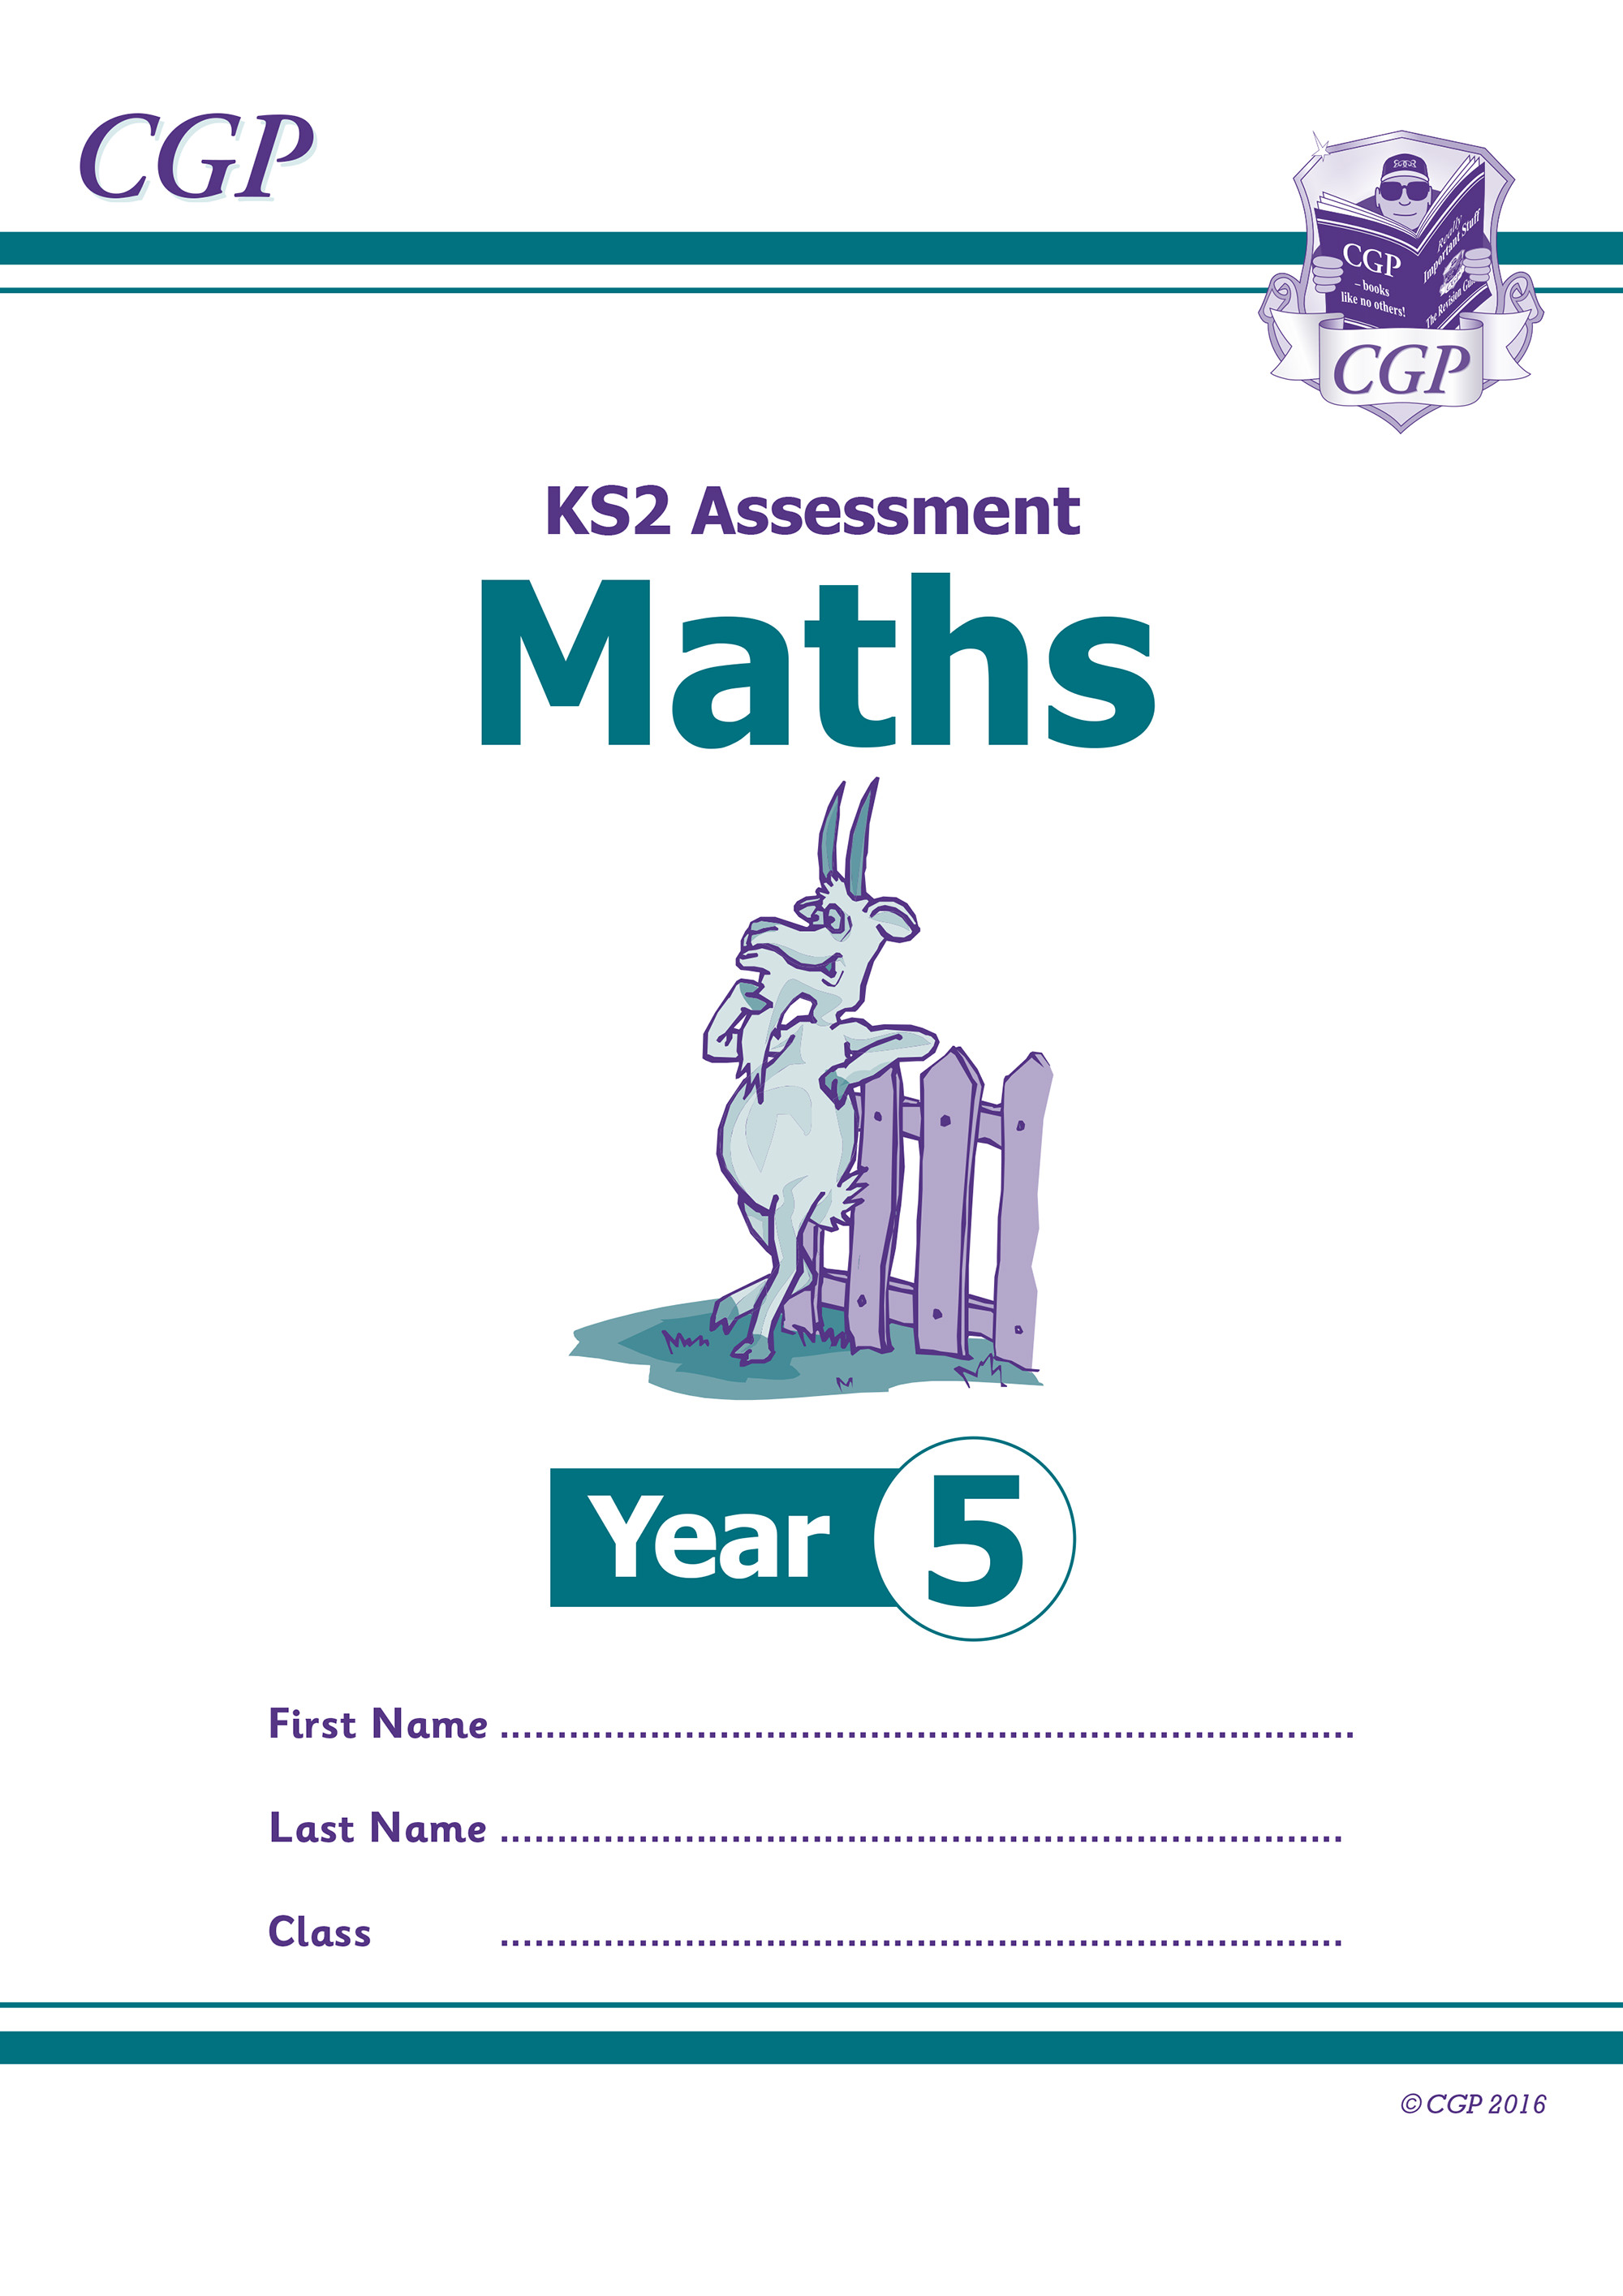 M5P21 - New KS2 Assessment: Maths - Year 5 Test